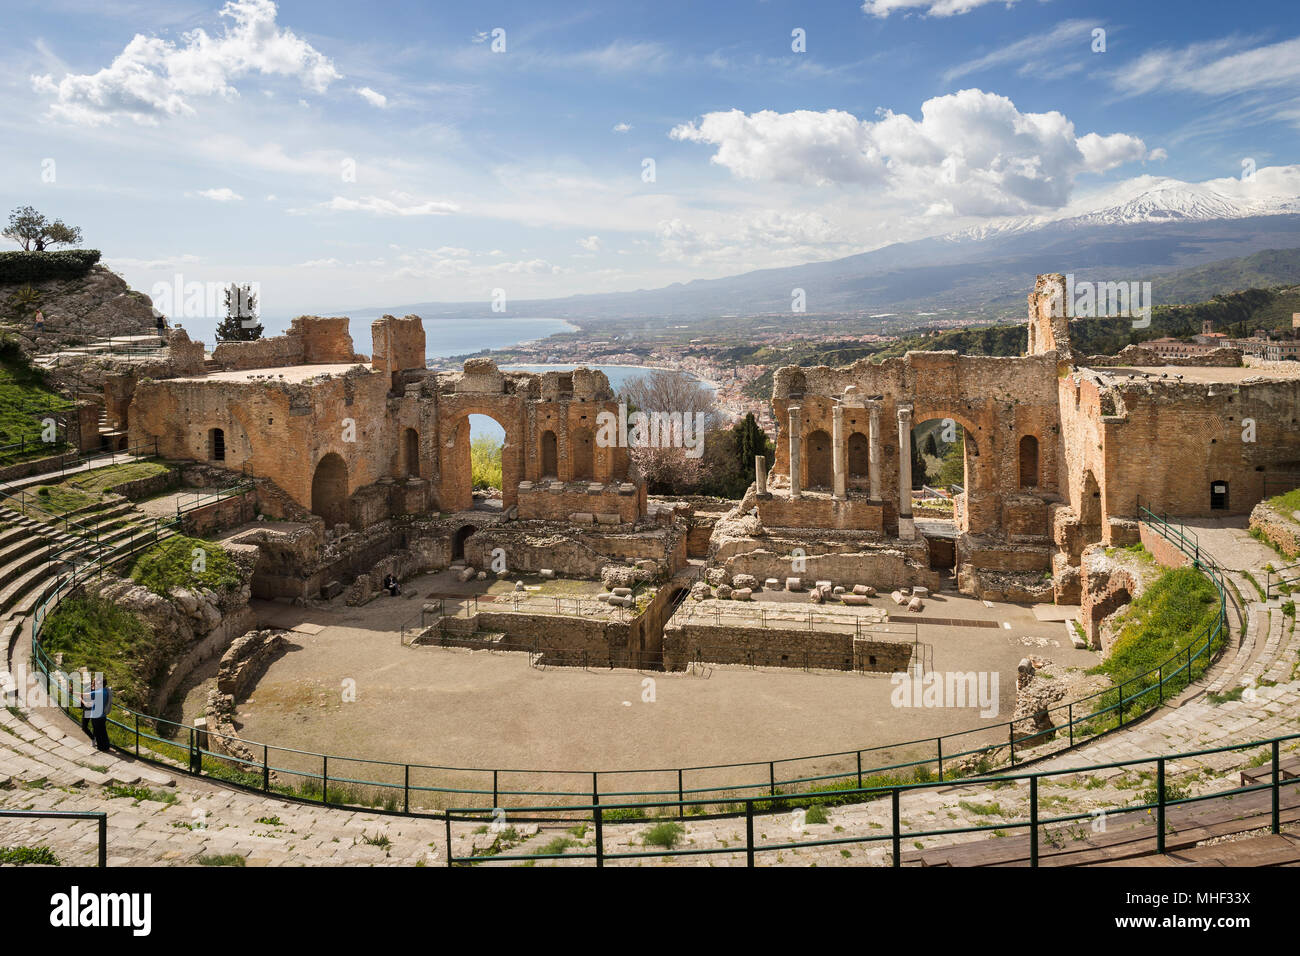 Ancient theatre of Taormina with Mt. Etna, Sicily. - Stock Image